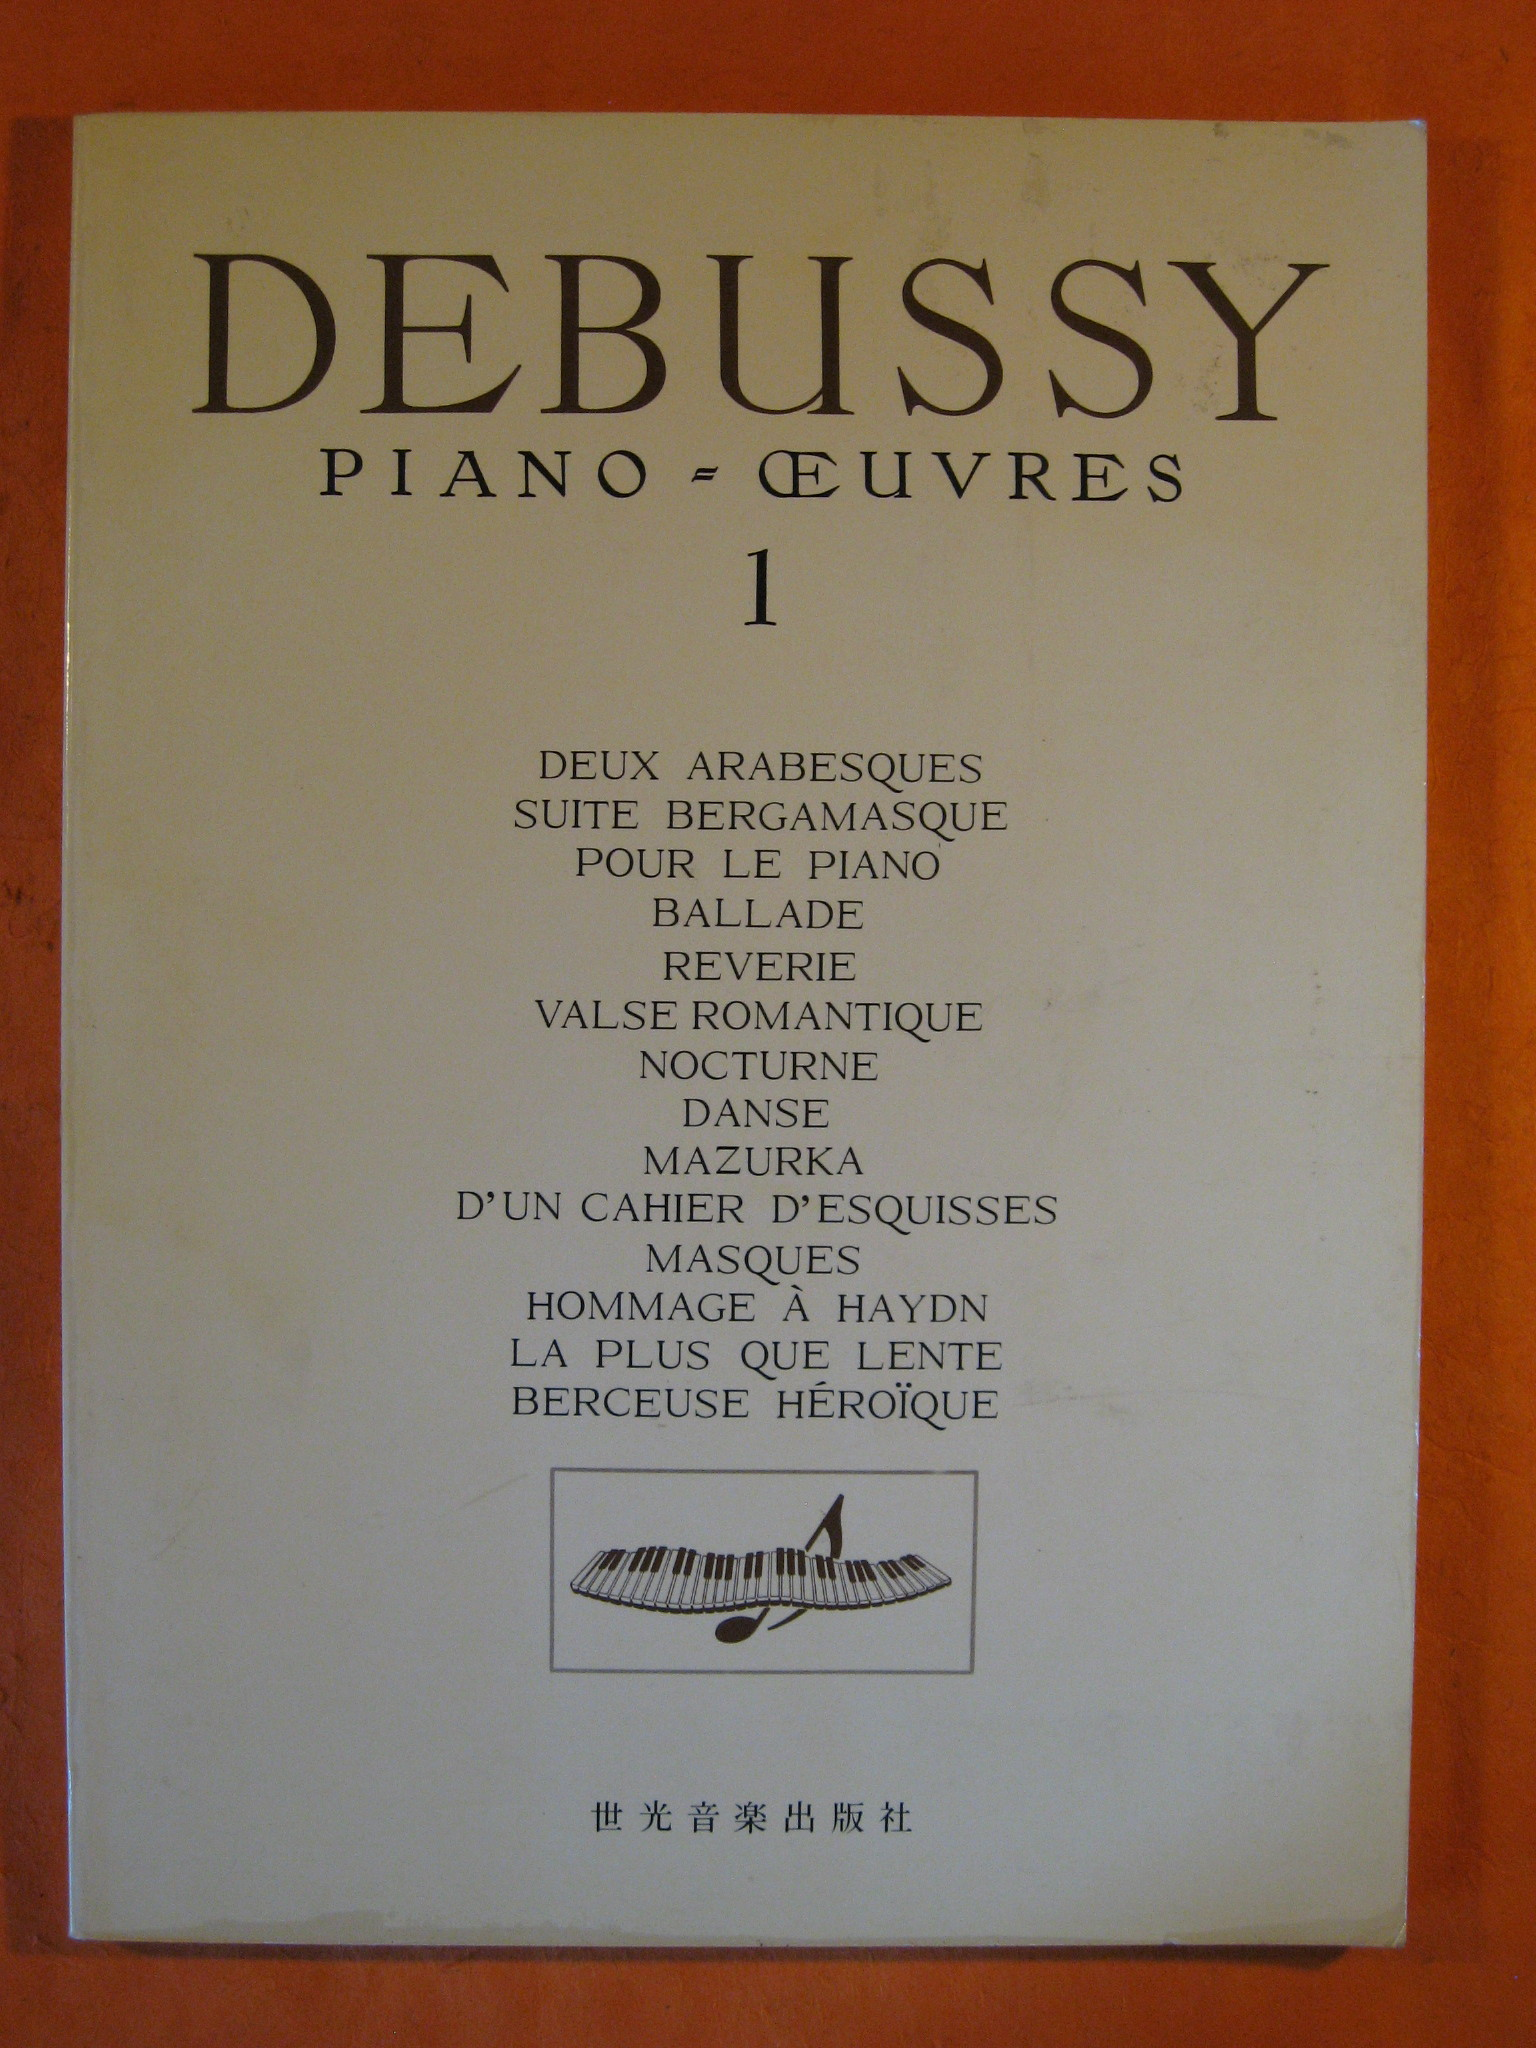 Debussy:  Piano Oeuvres 1, Debussy